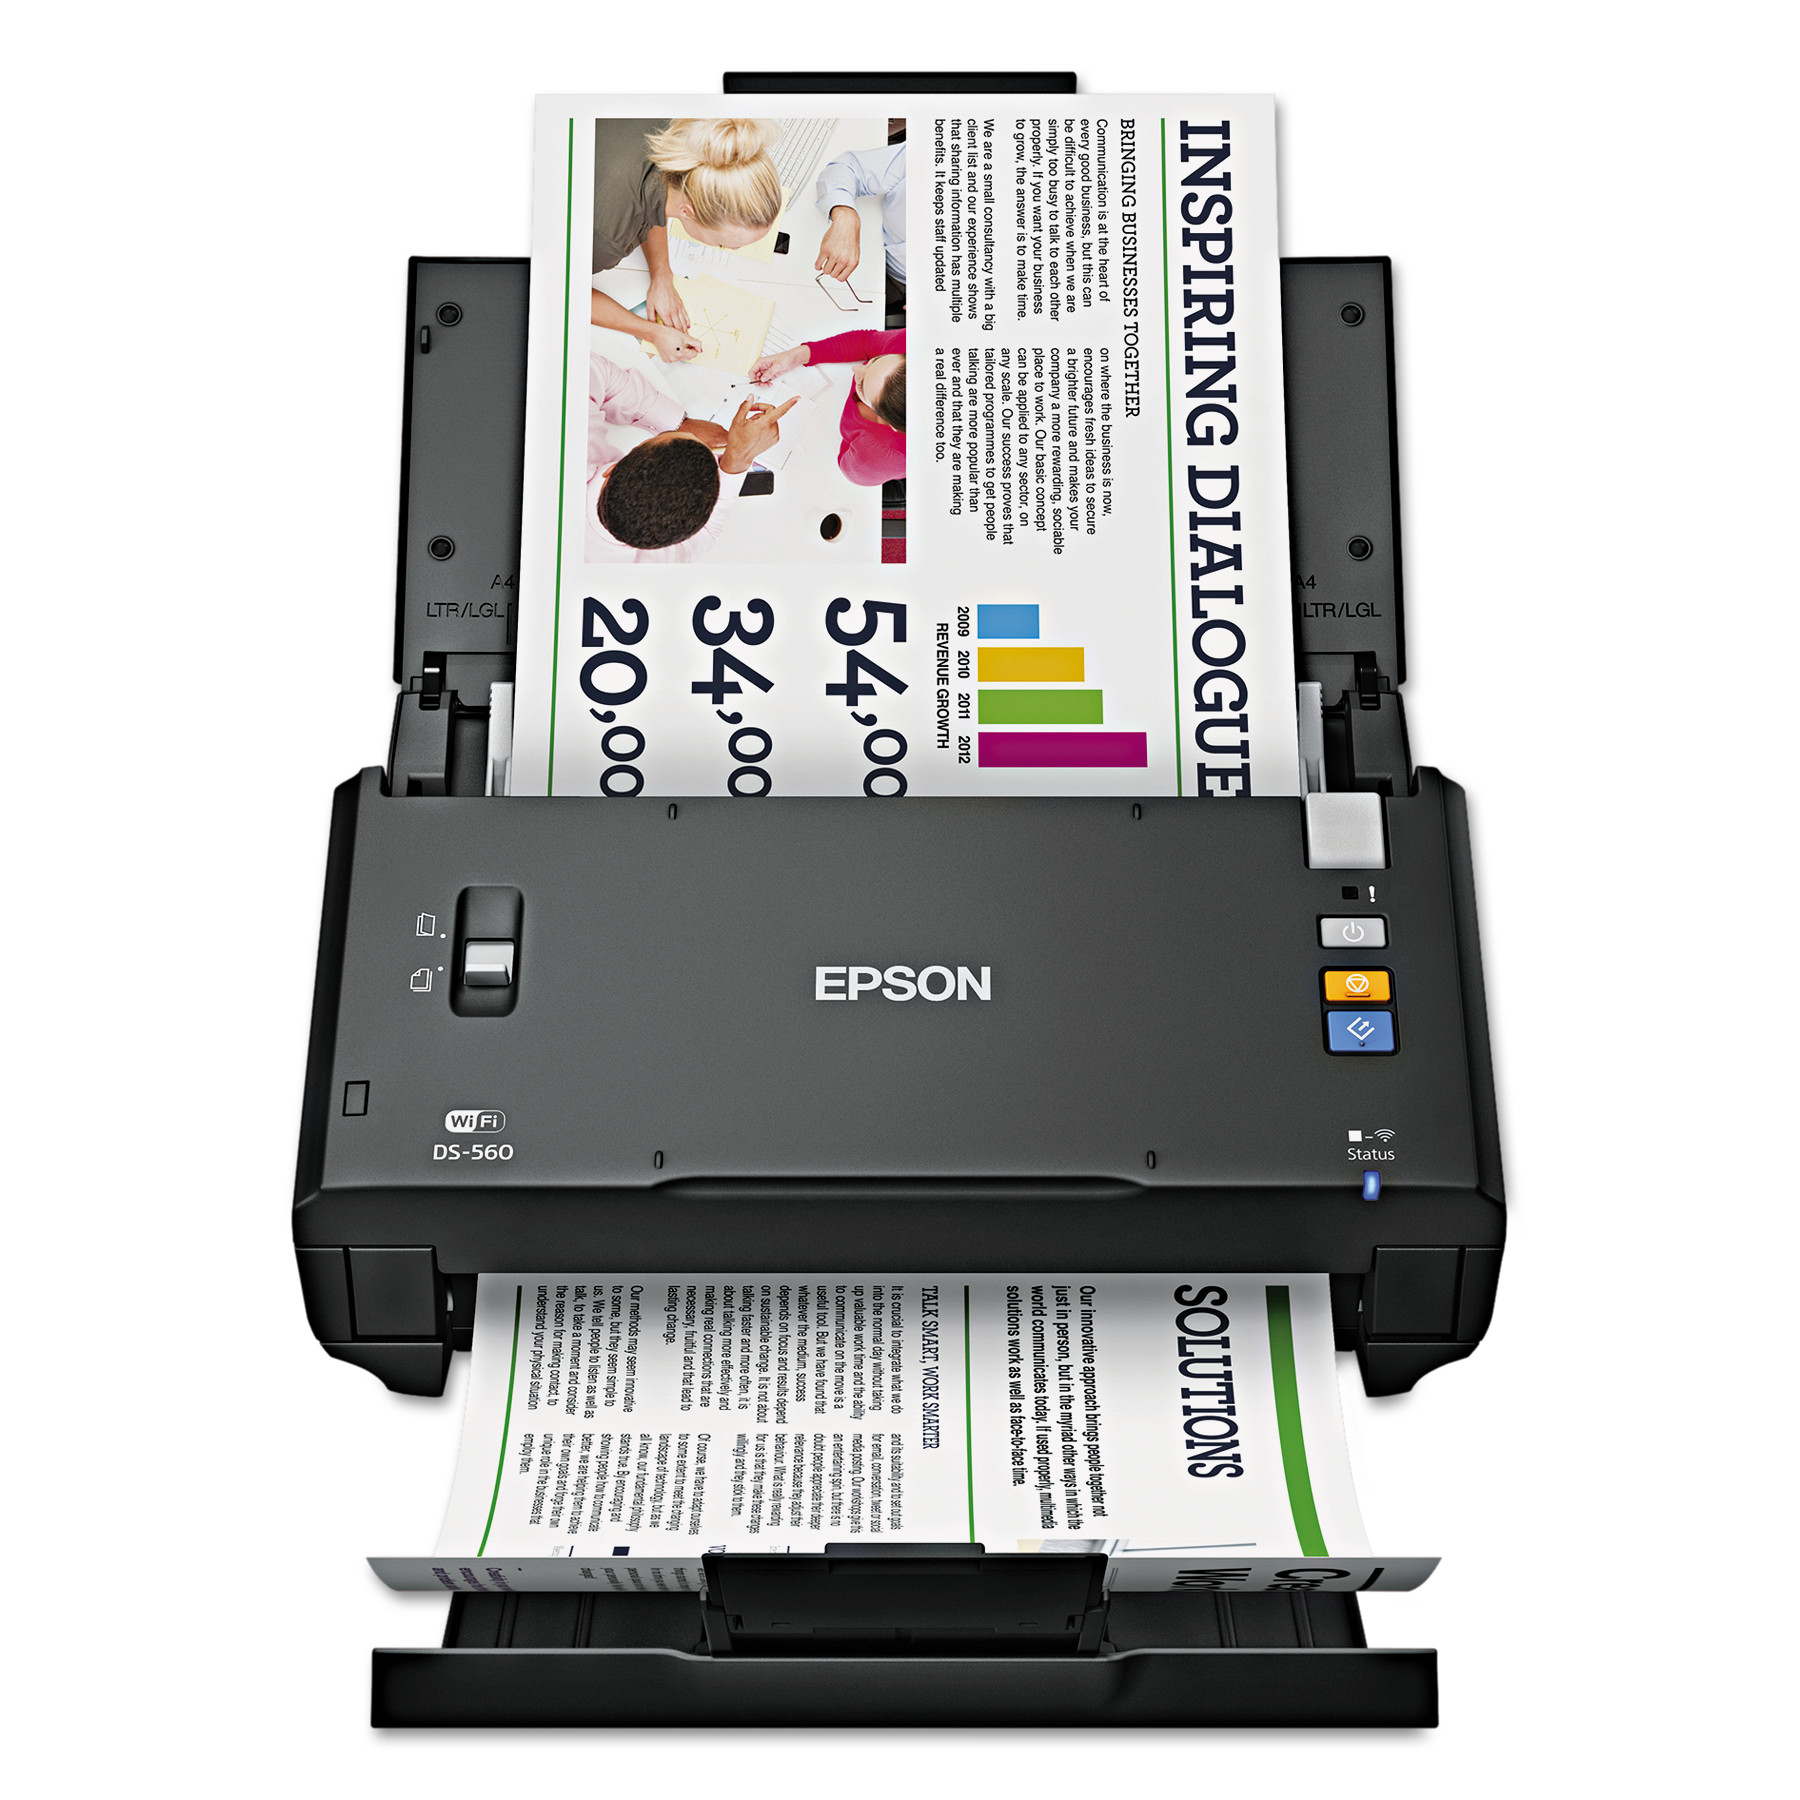 Epson WorkForce DS-560, 600 x 600 dpi, Black